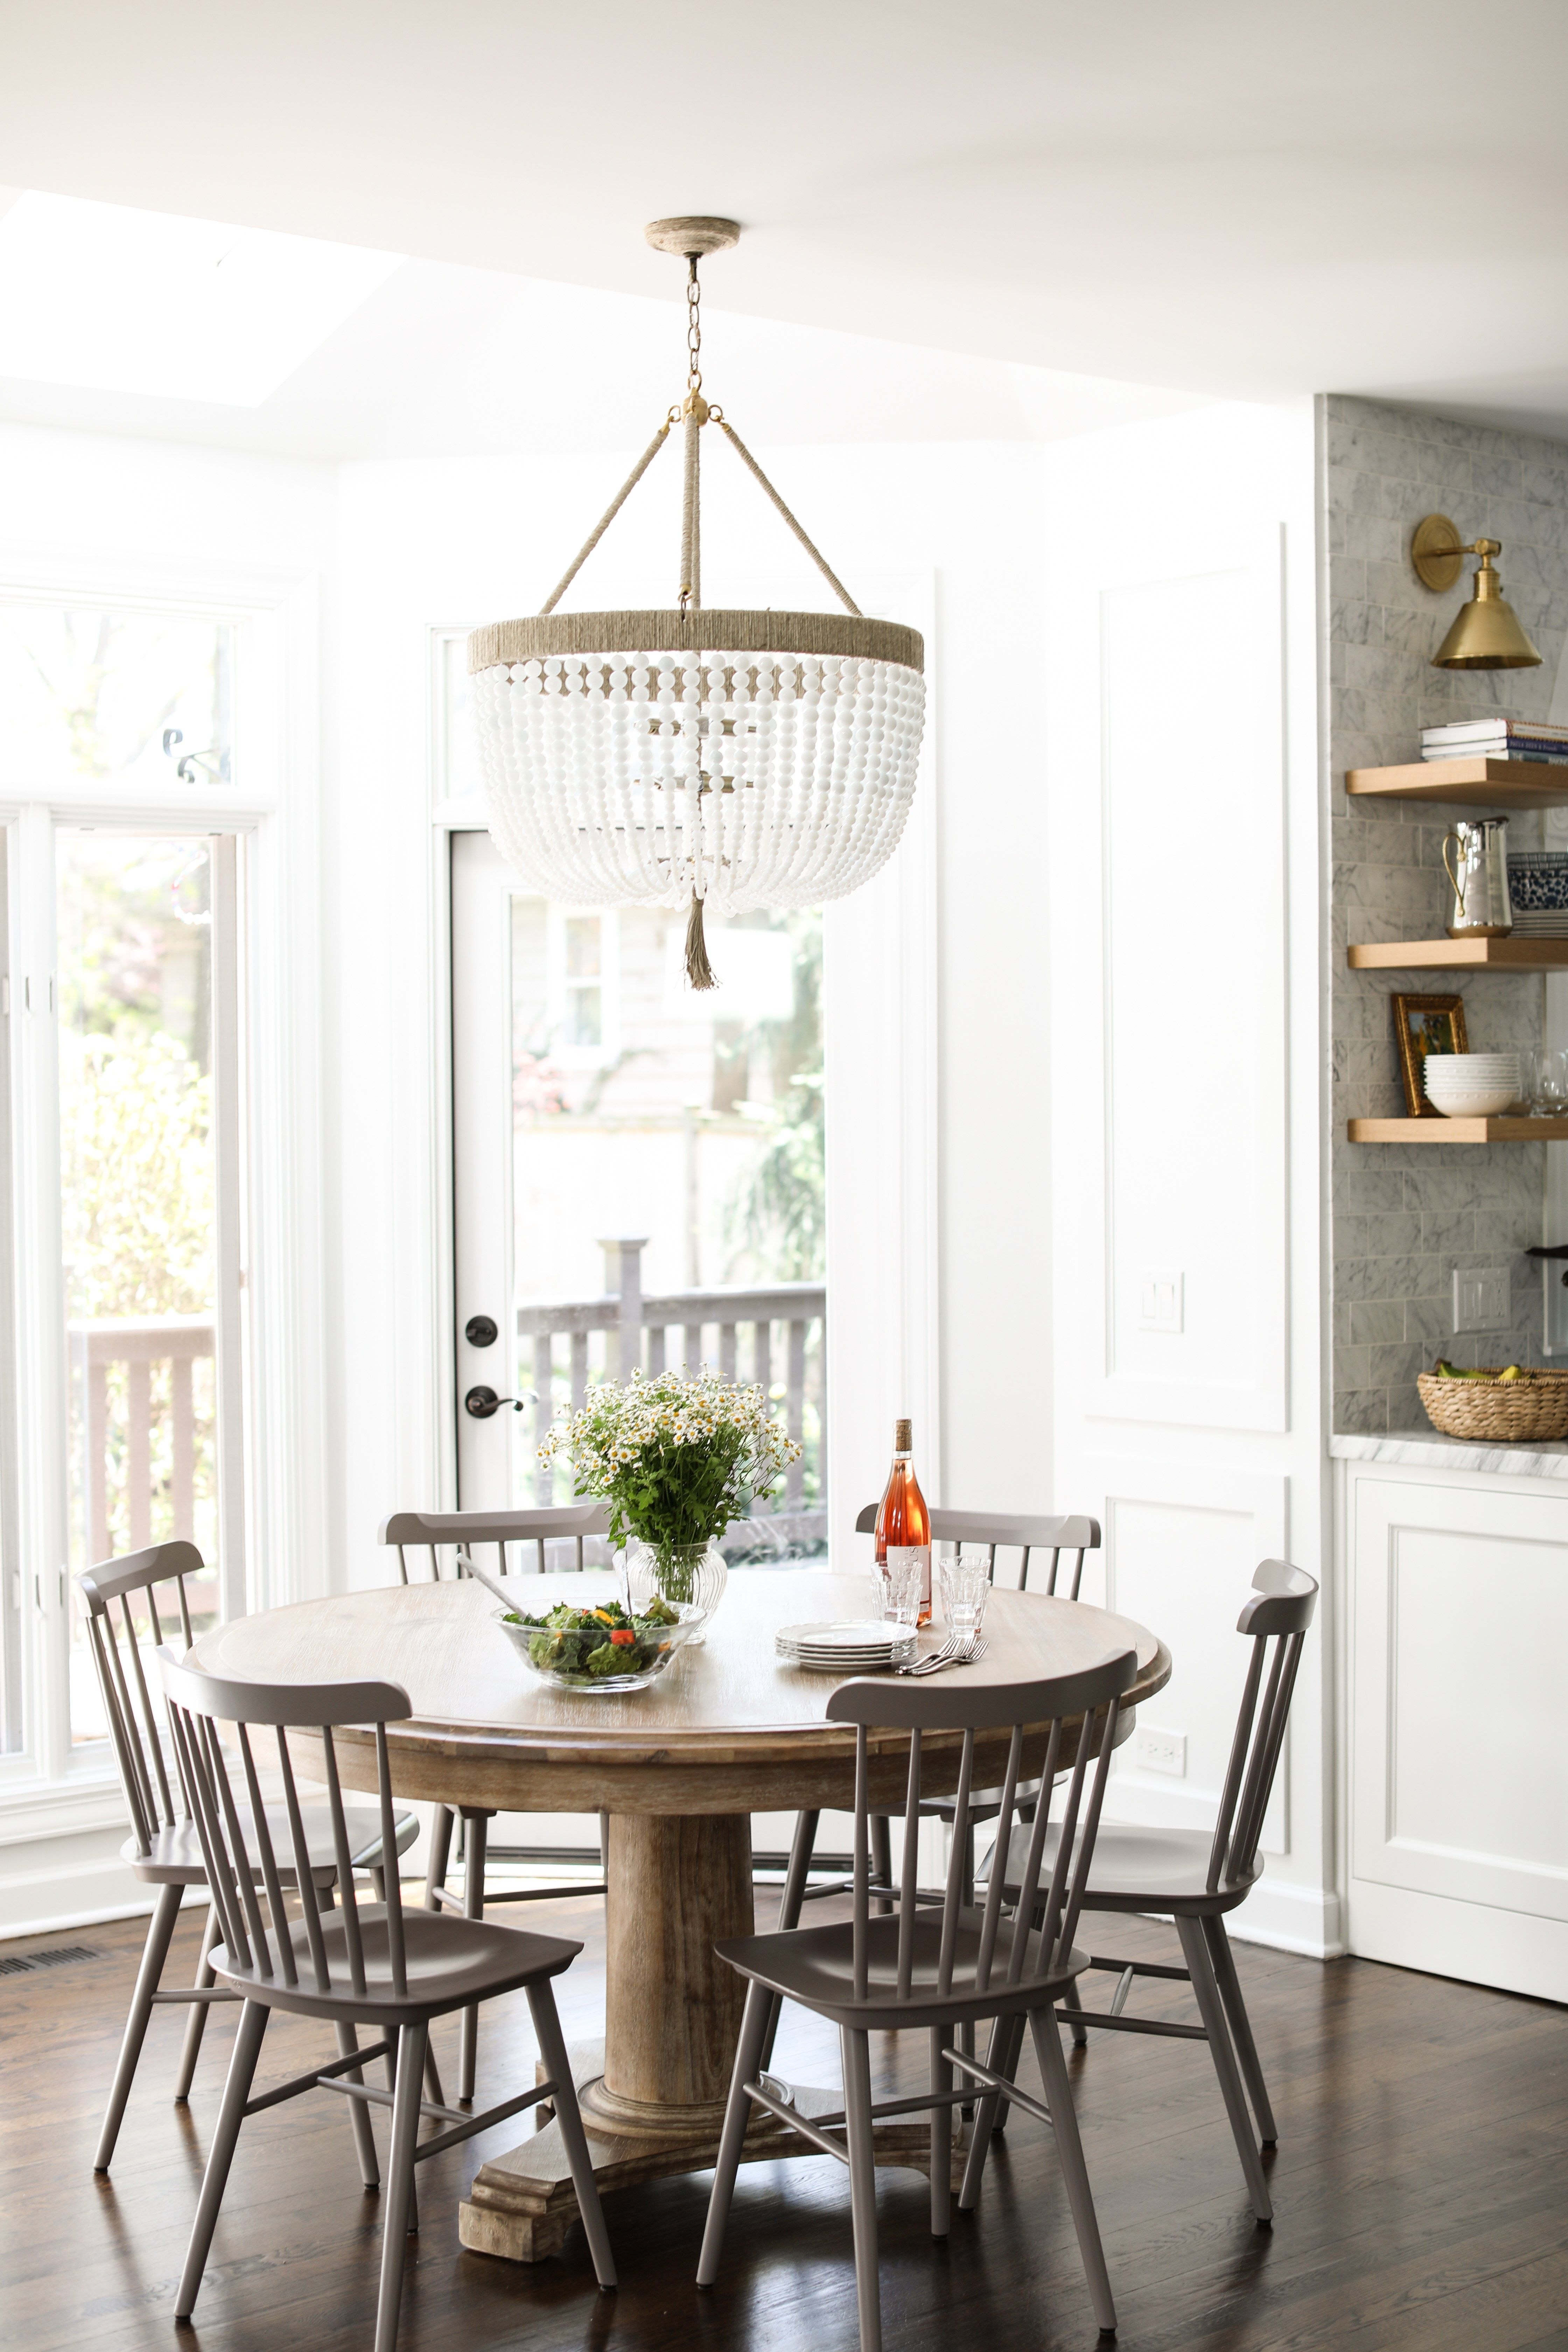 Lorraine Kitchen Renovation Before And After Park And Oak Interior Design Round Wooden Dining Table Oak Dining Room Dining Room Remodel